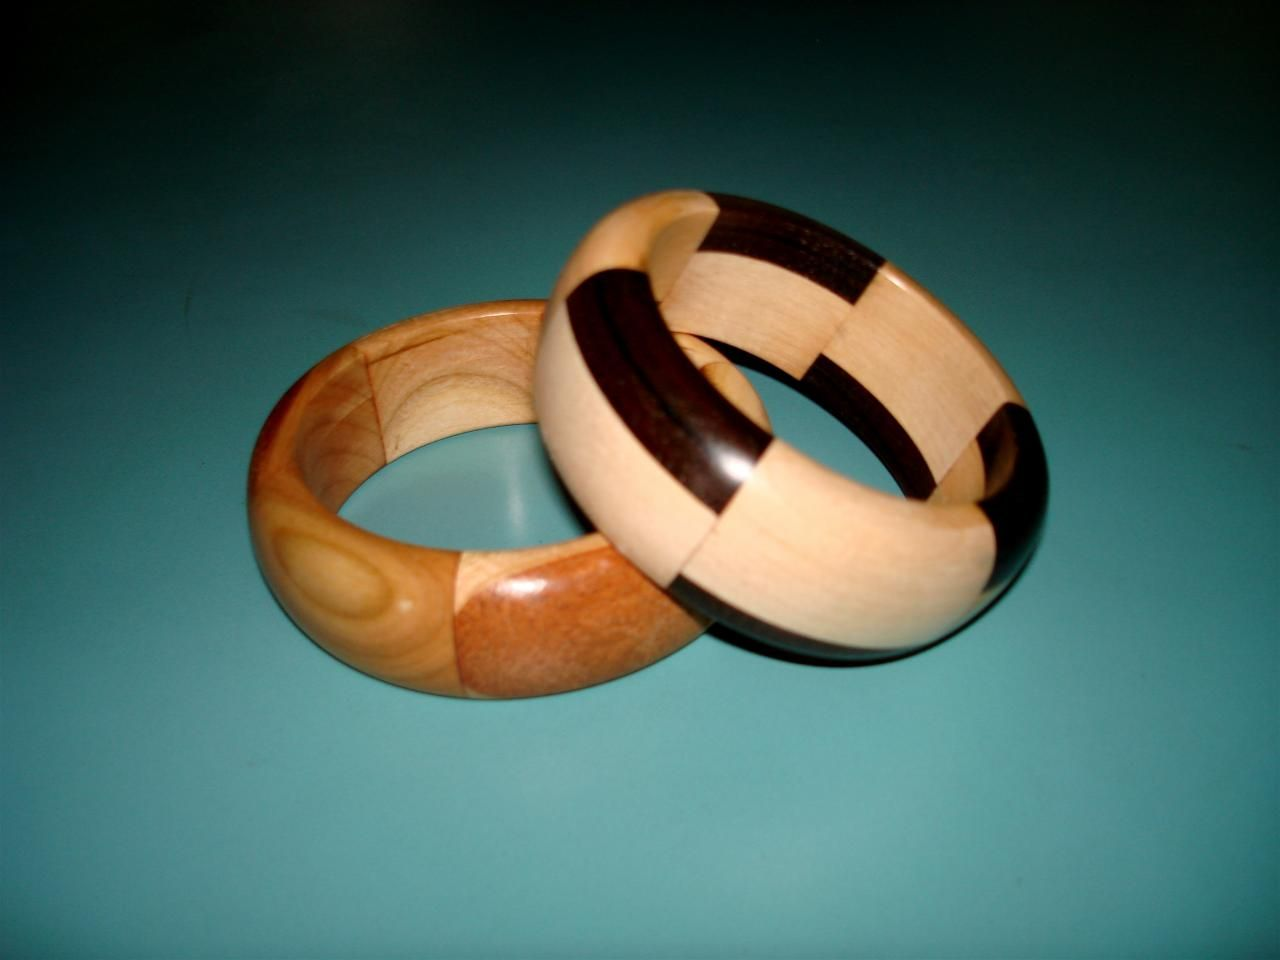 ring mattscaptiverodring make experiment rings image captive lathe article featured